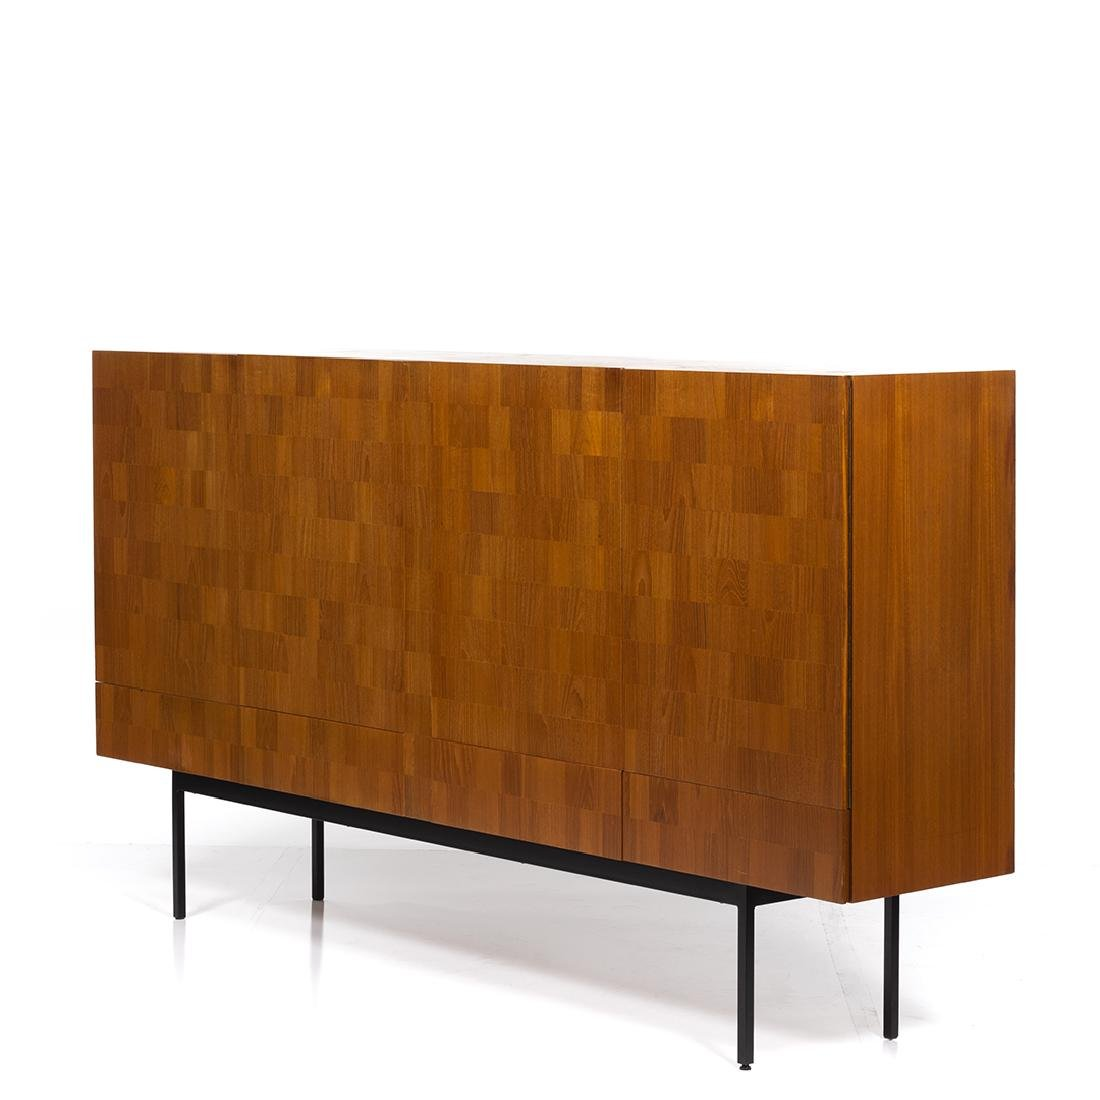 Dieter Waeckerlin Sideboard - 2